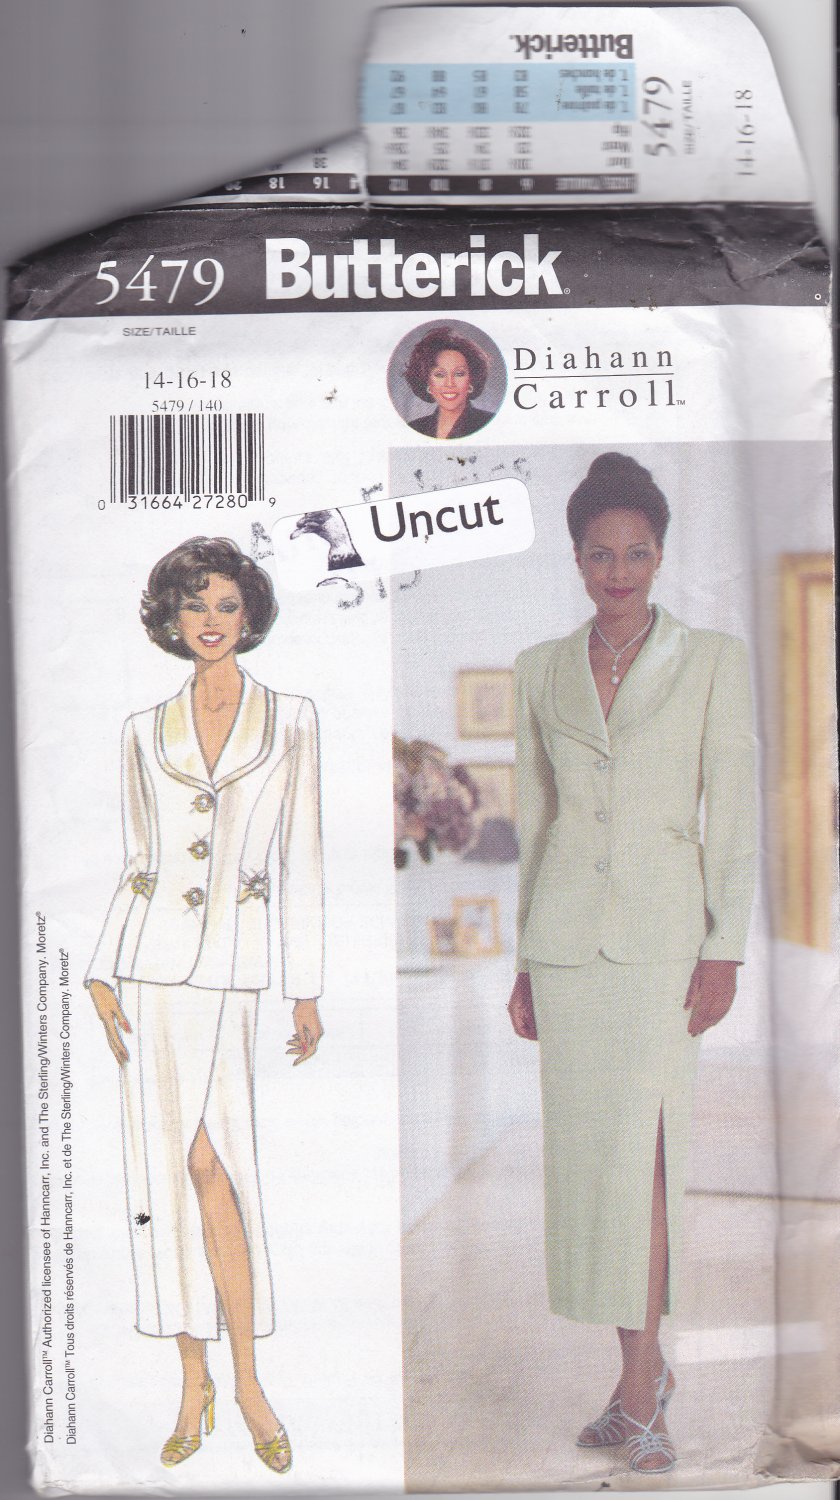 Butterick 5479 Pattern Uncut FF 14 16 18 Dressy Lined Jacket Skirt Diahann Carroll